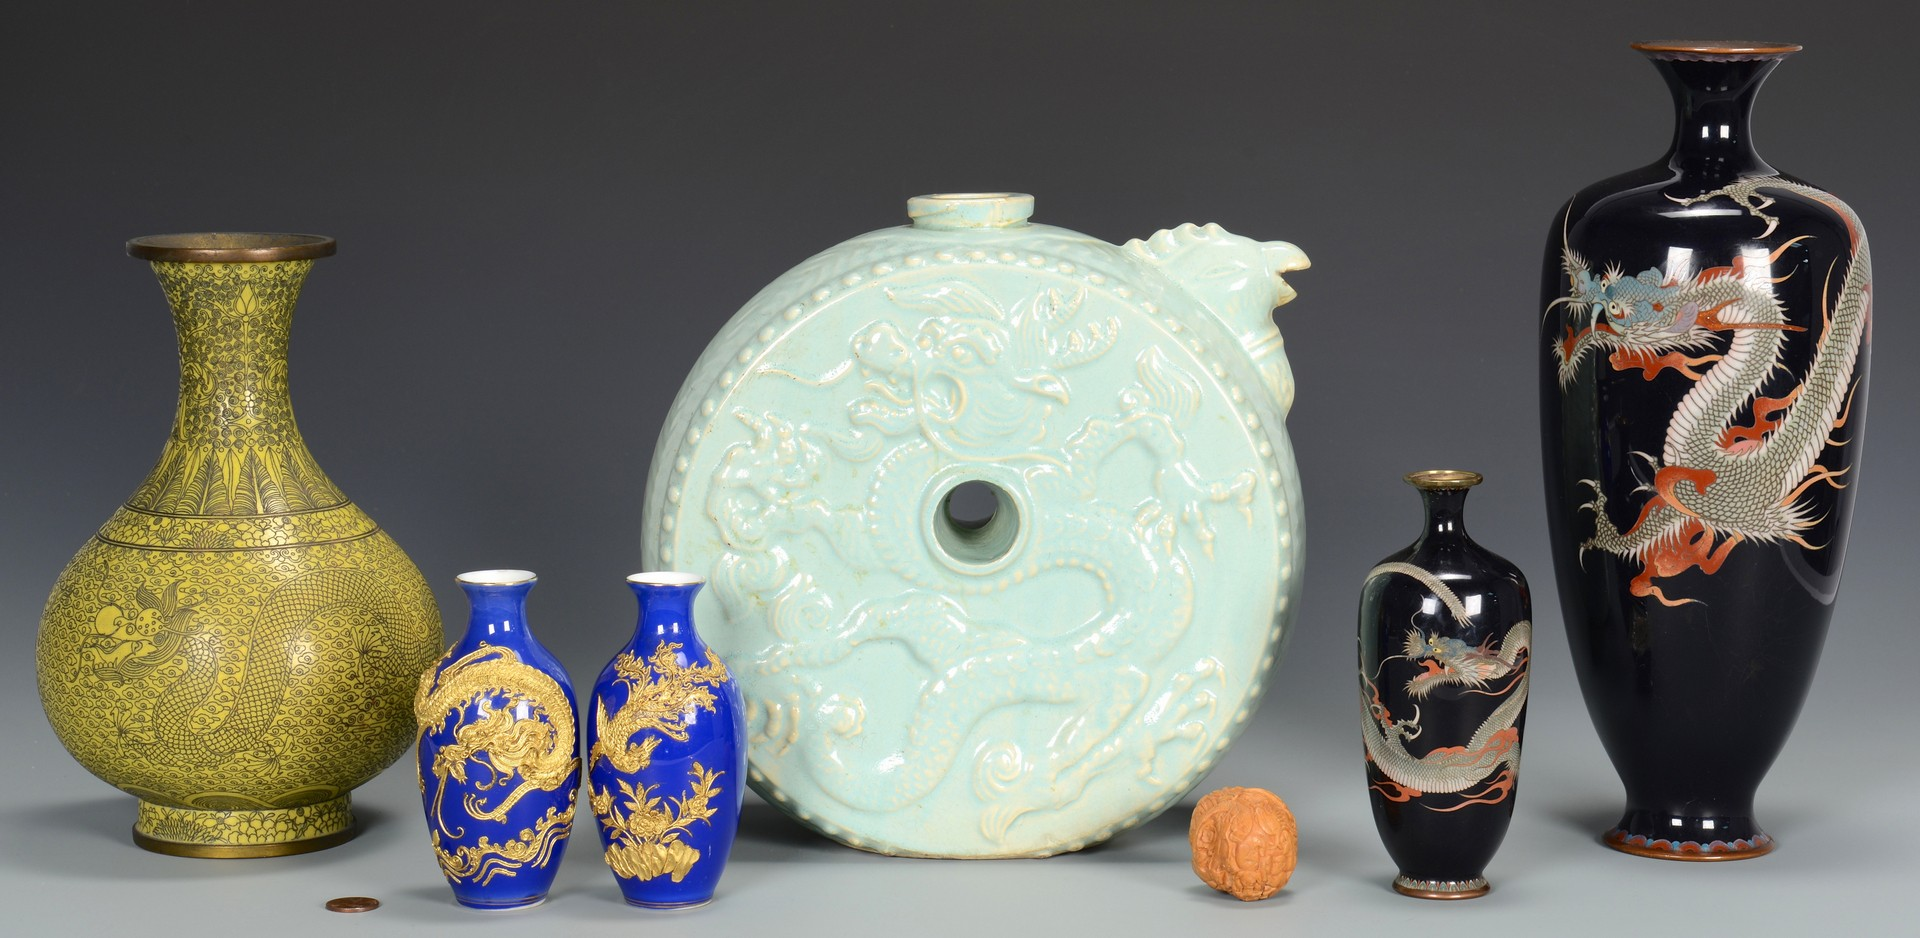 Lot 3594249: 7 Assorted Asian items inc. cloisonne